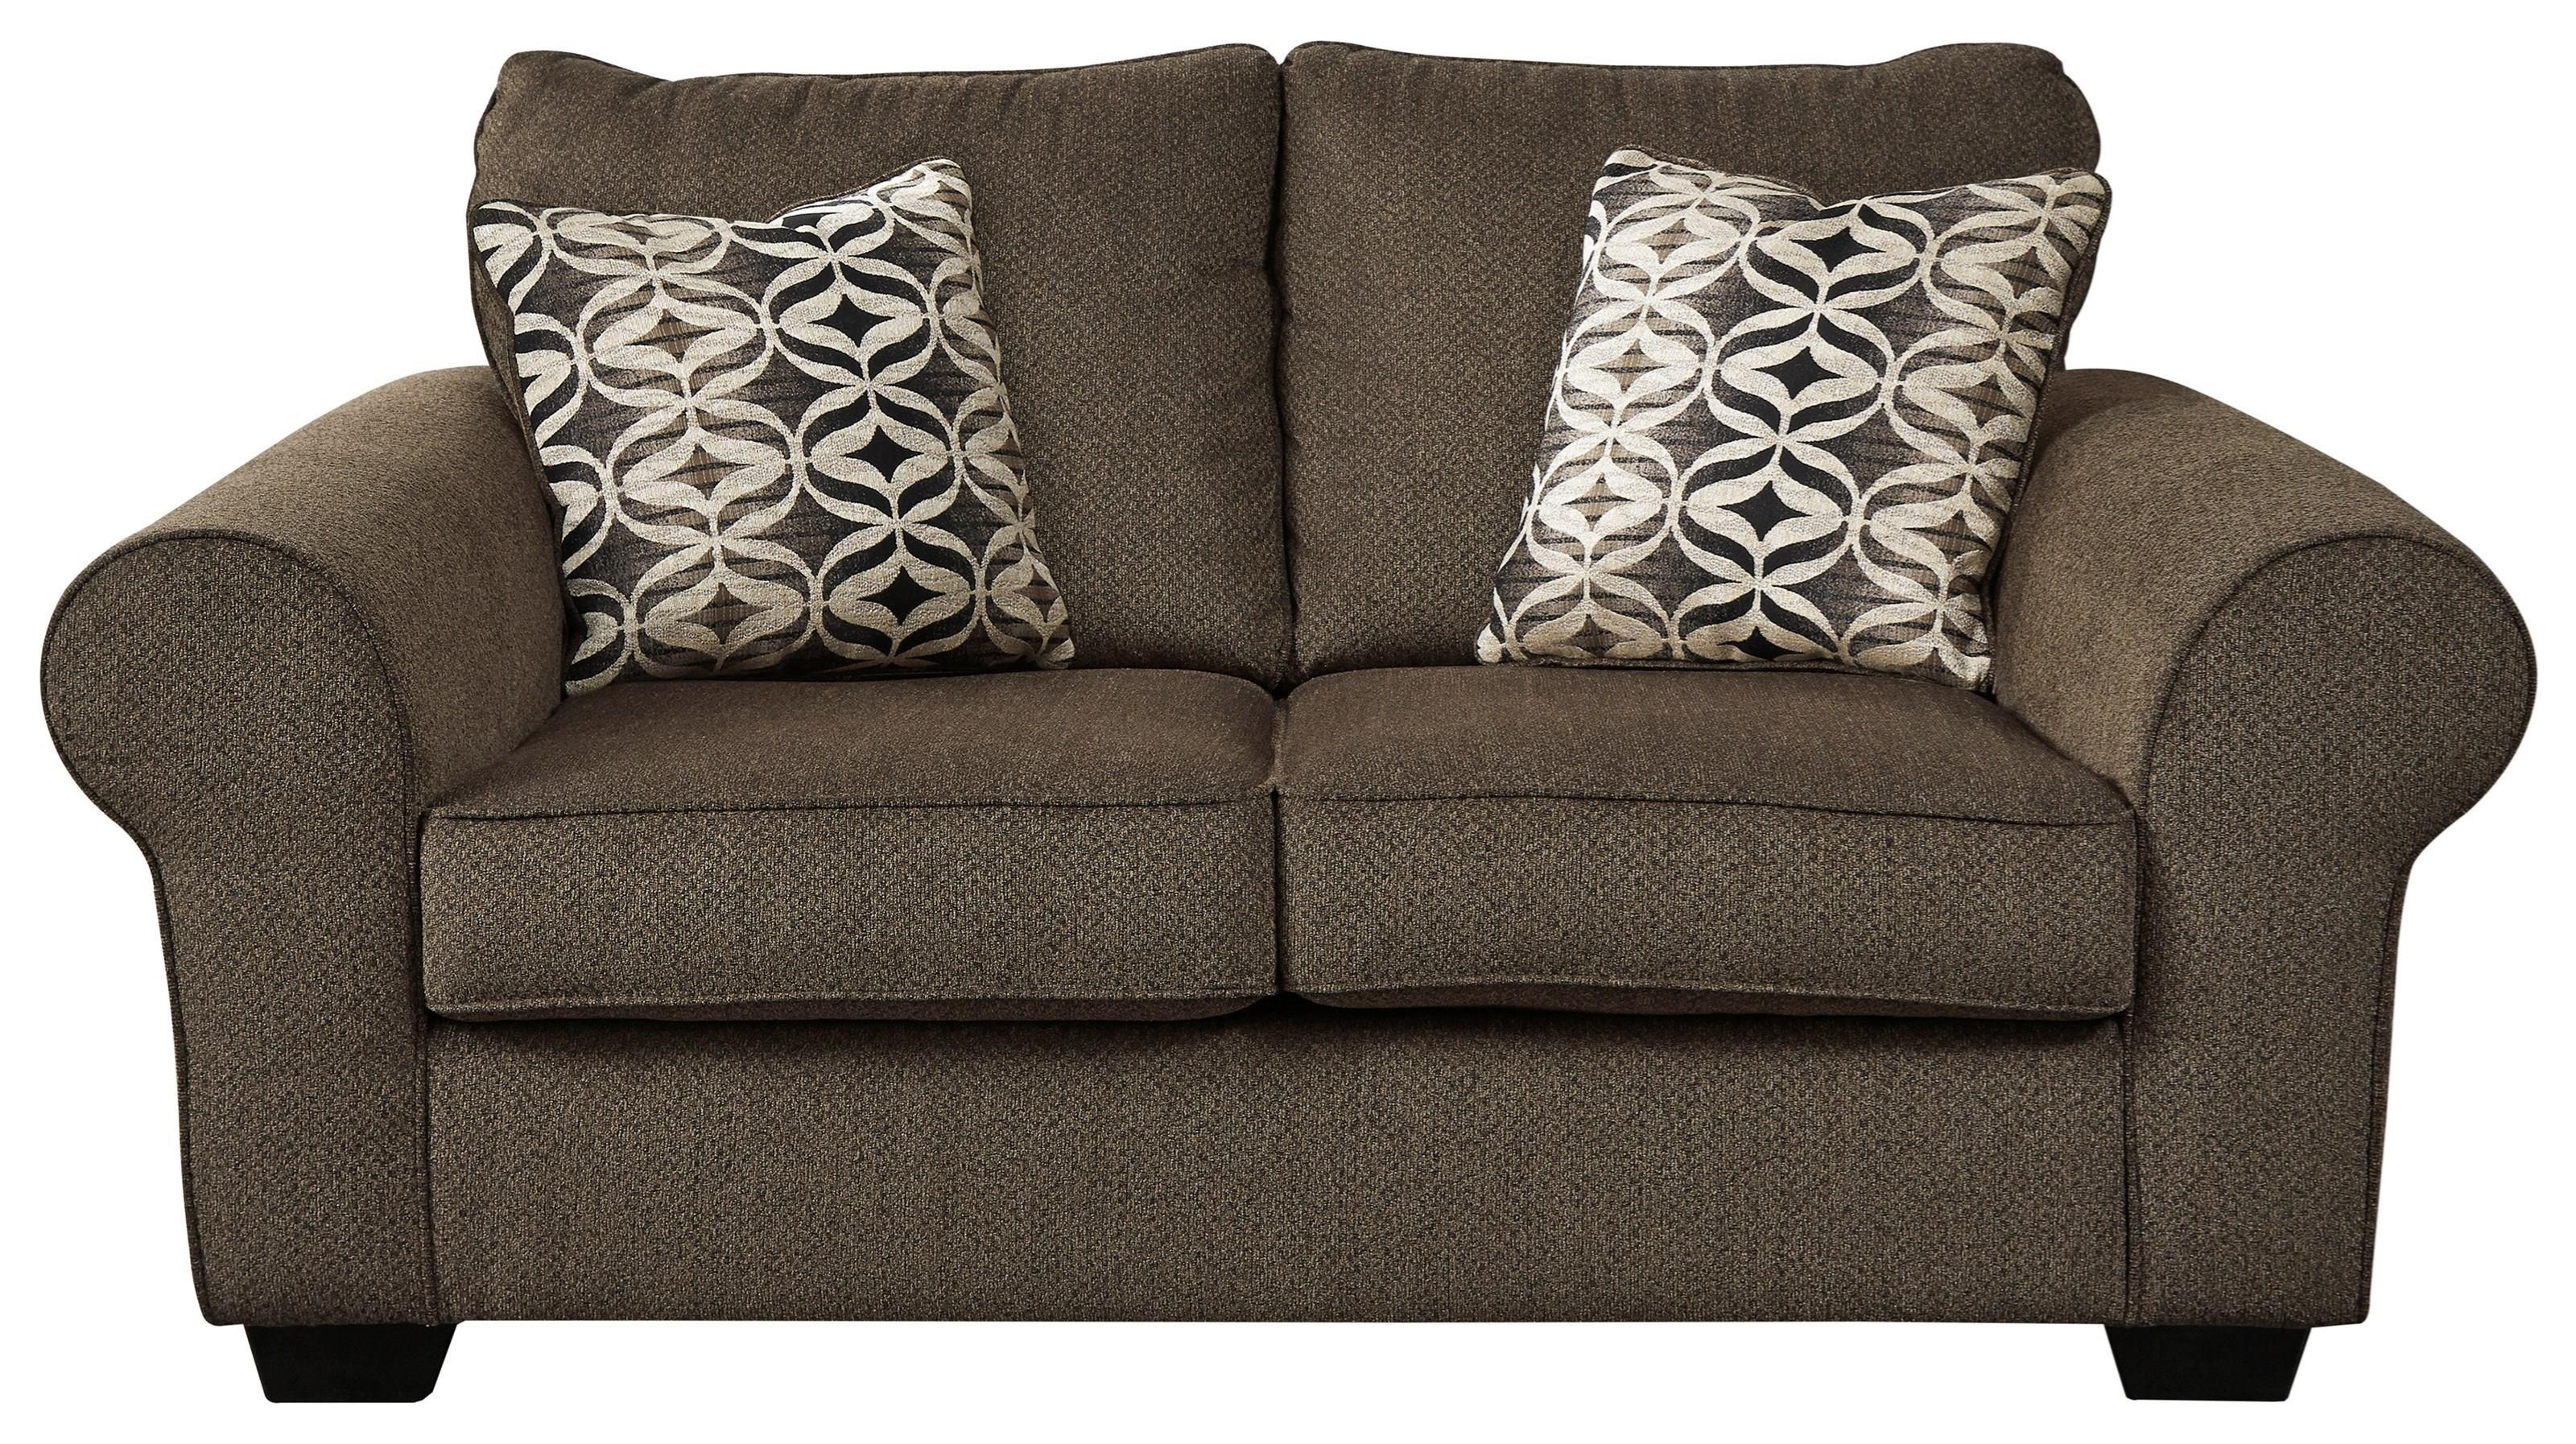 Nesso Nesso Loveseat by Ashley at Morris Home